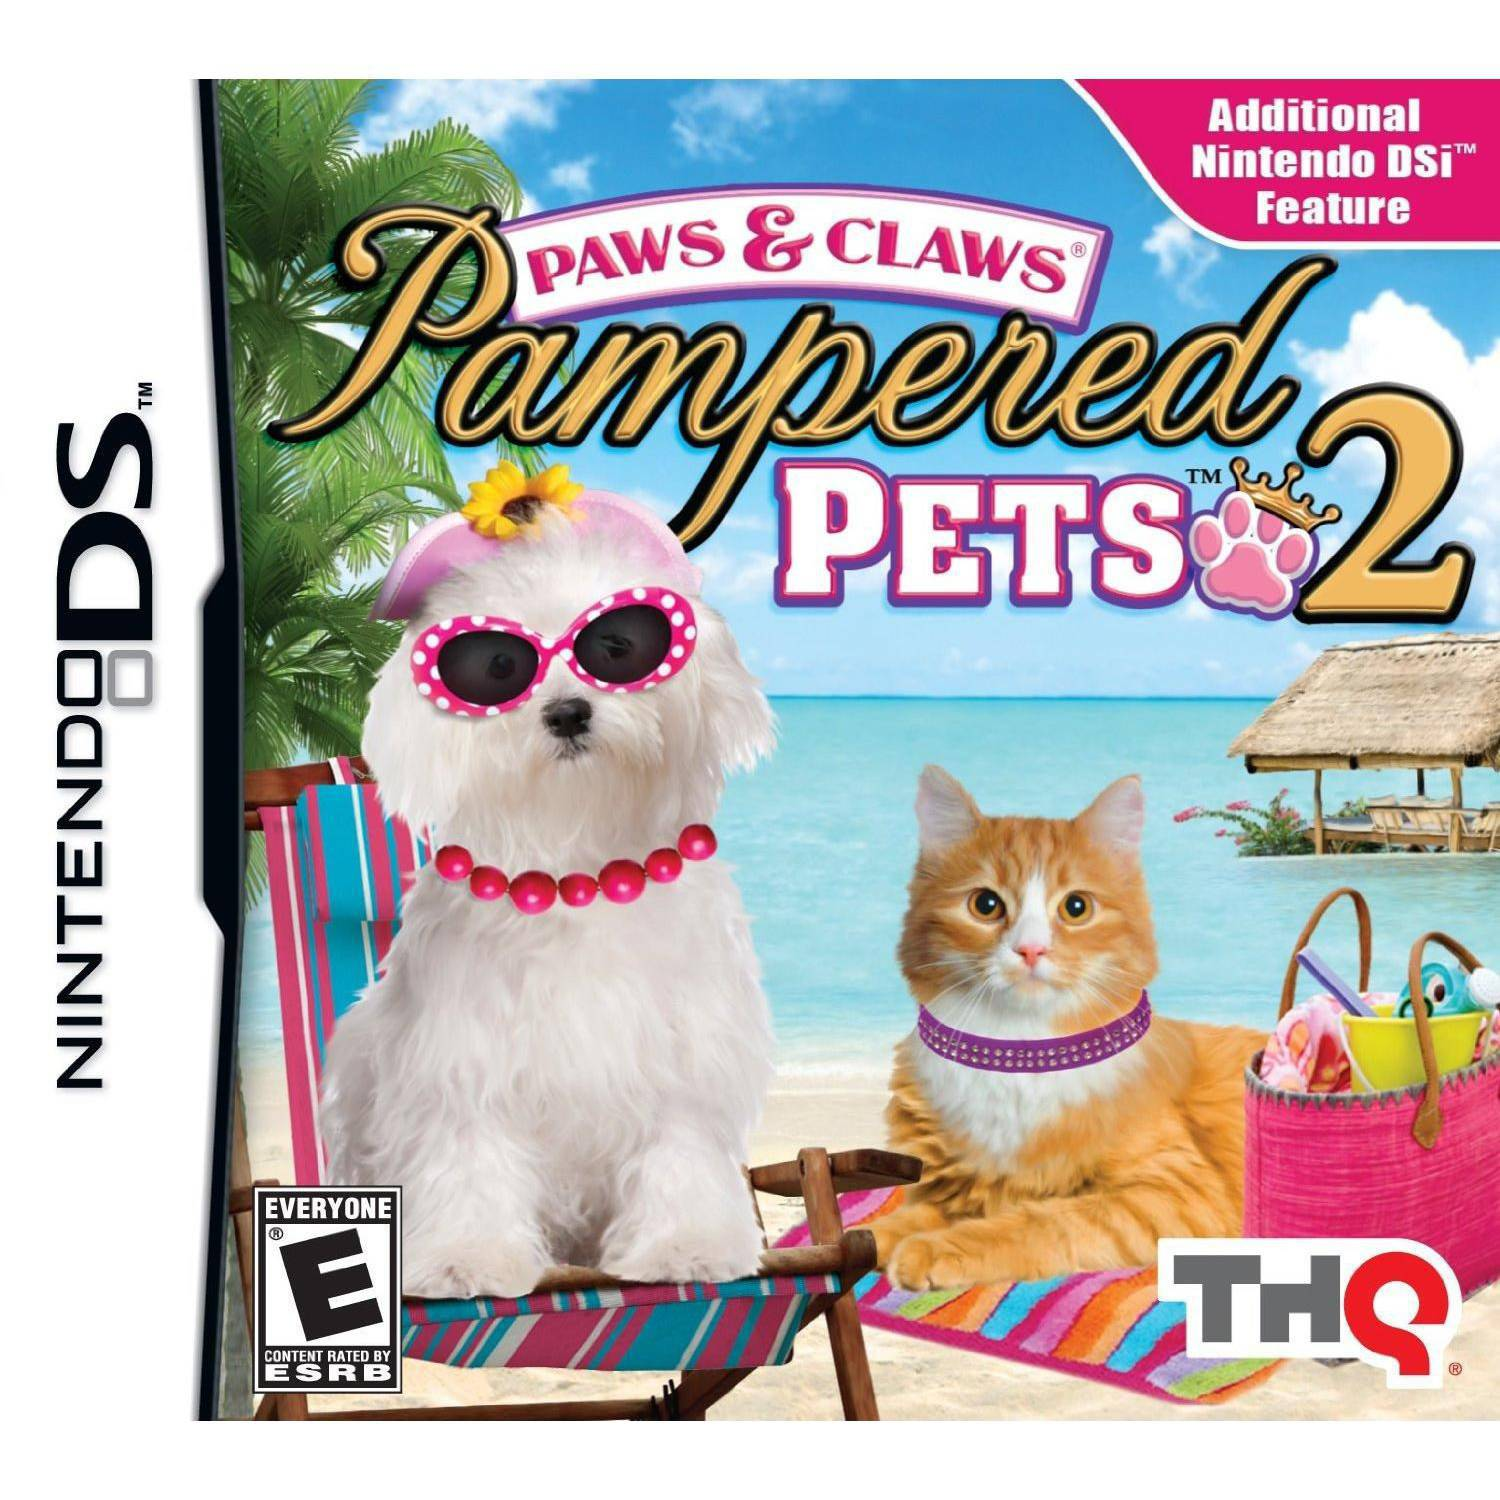 Paws & Claws: Pampered Pets 2 (DS)